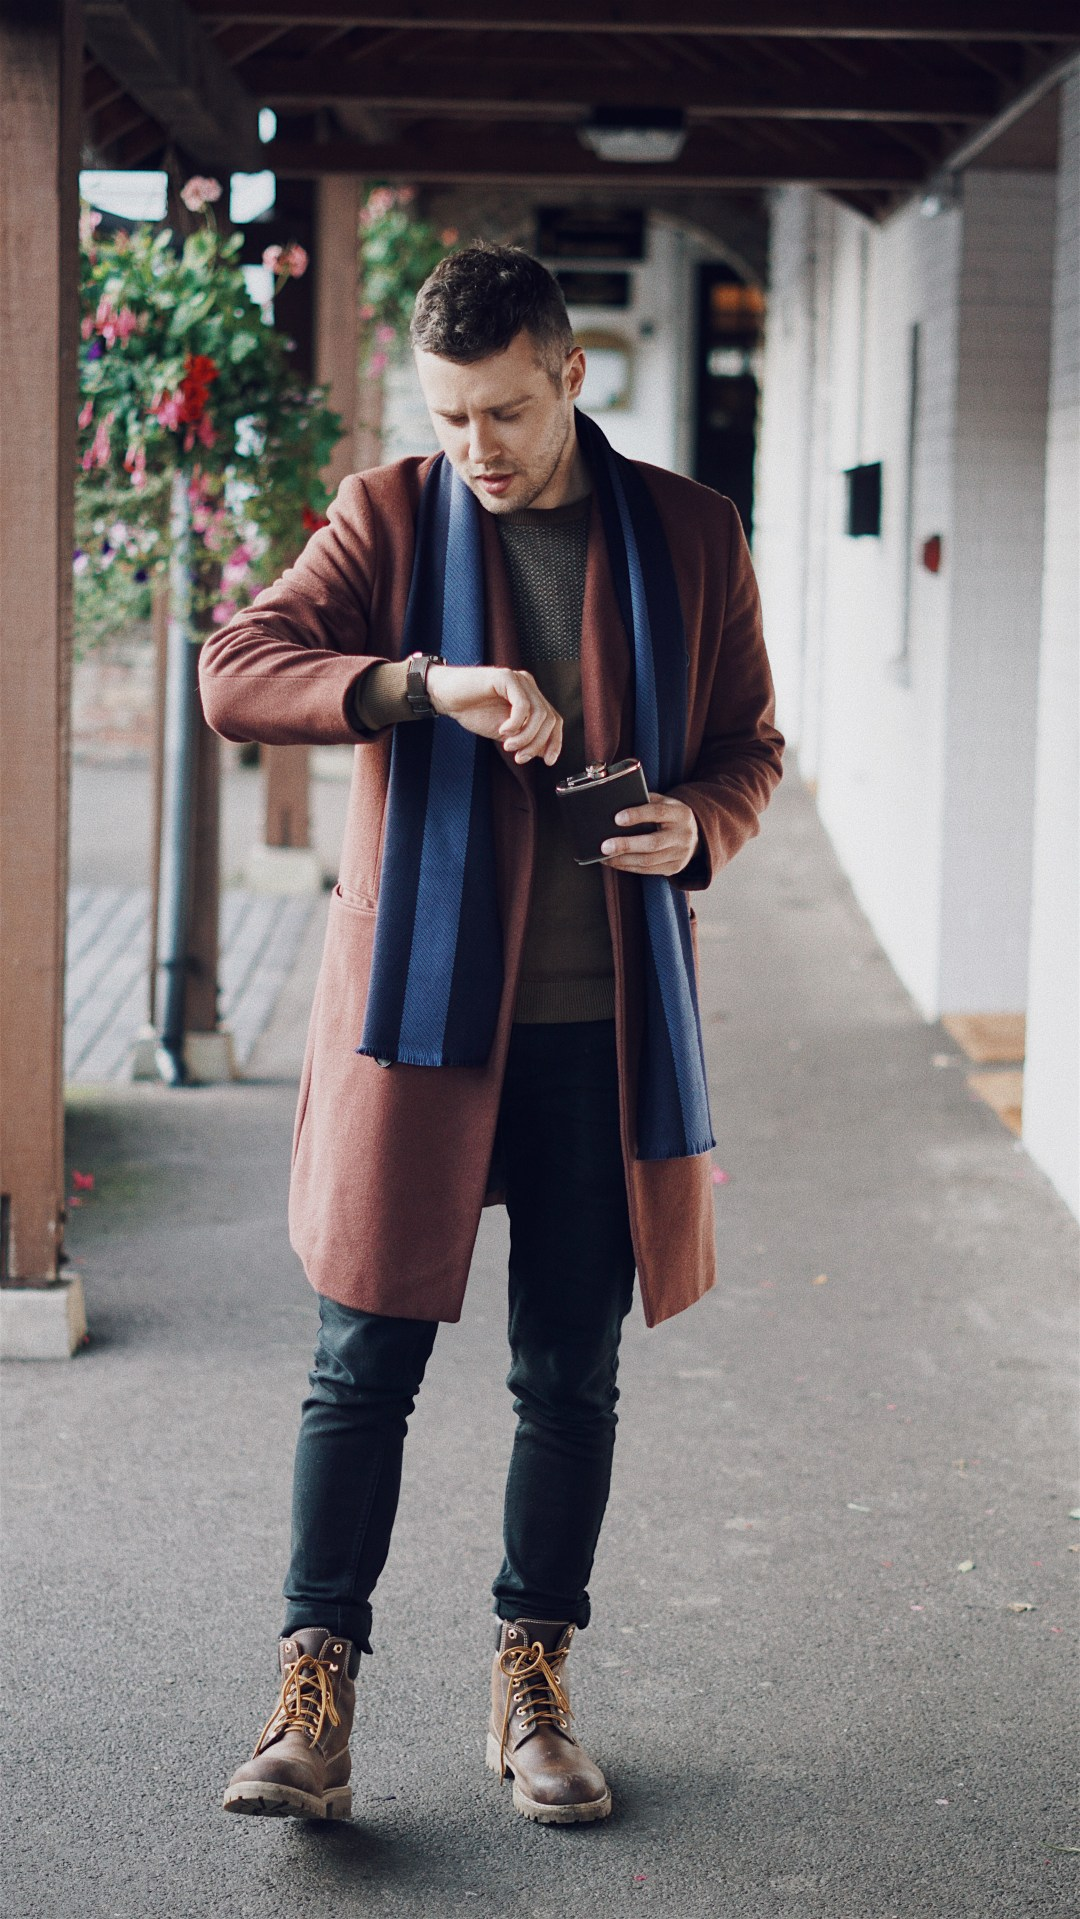 We are TIMEX. Wearing TIMEX Easy Reader® 40th Anniversary Special Edition, The University Stripe Pure Wool Scarf from Aspinal of London, ASOS Wool Mix Double Breasted Overcoat In Rust, NEXT Tan Colourblock Crew and Leather Work Boots in Brown. Blog by Skirmantas Petraitis.